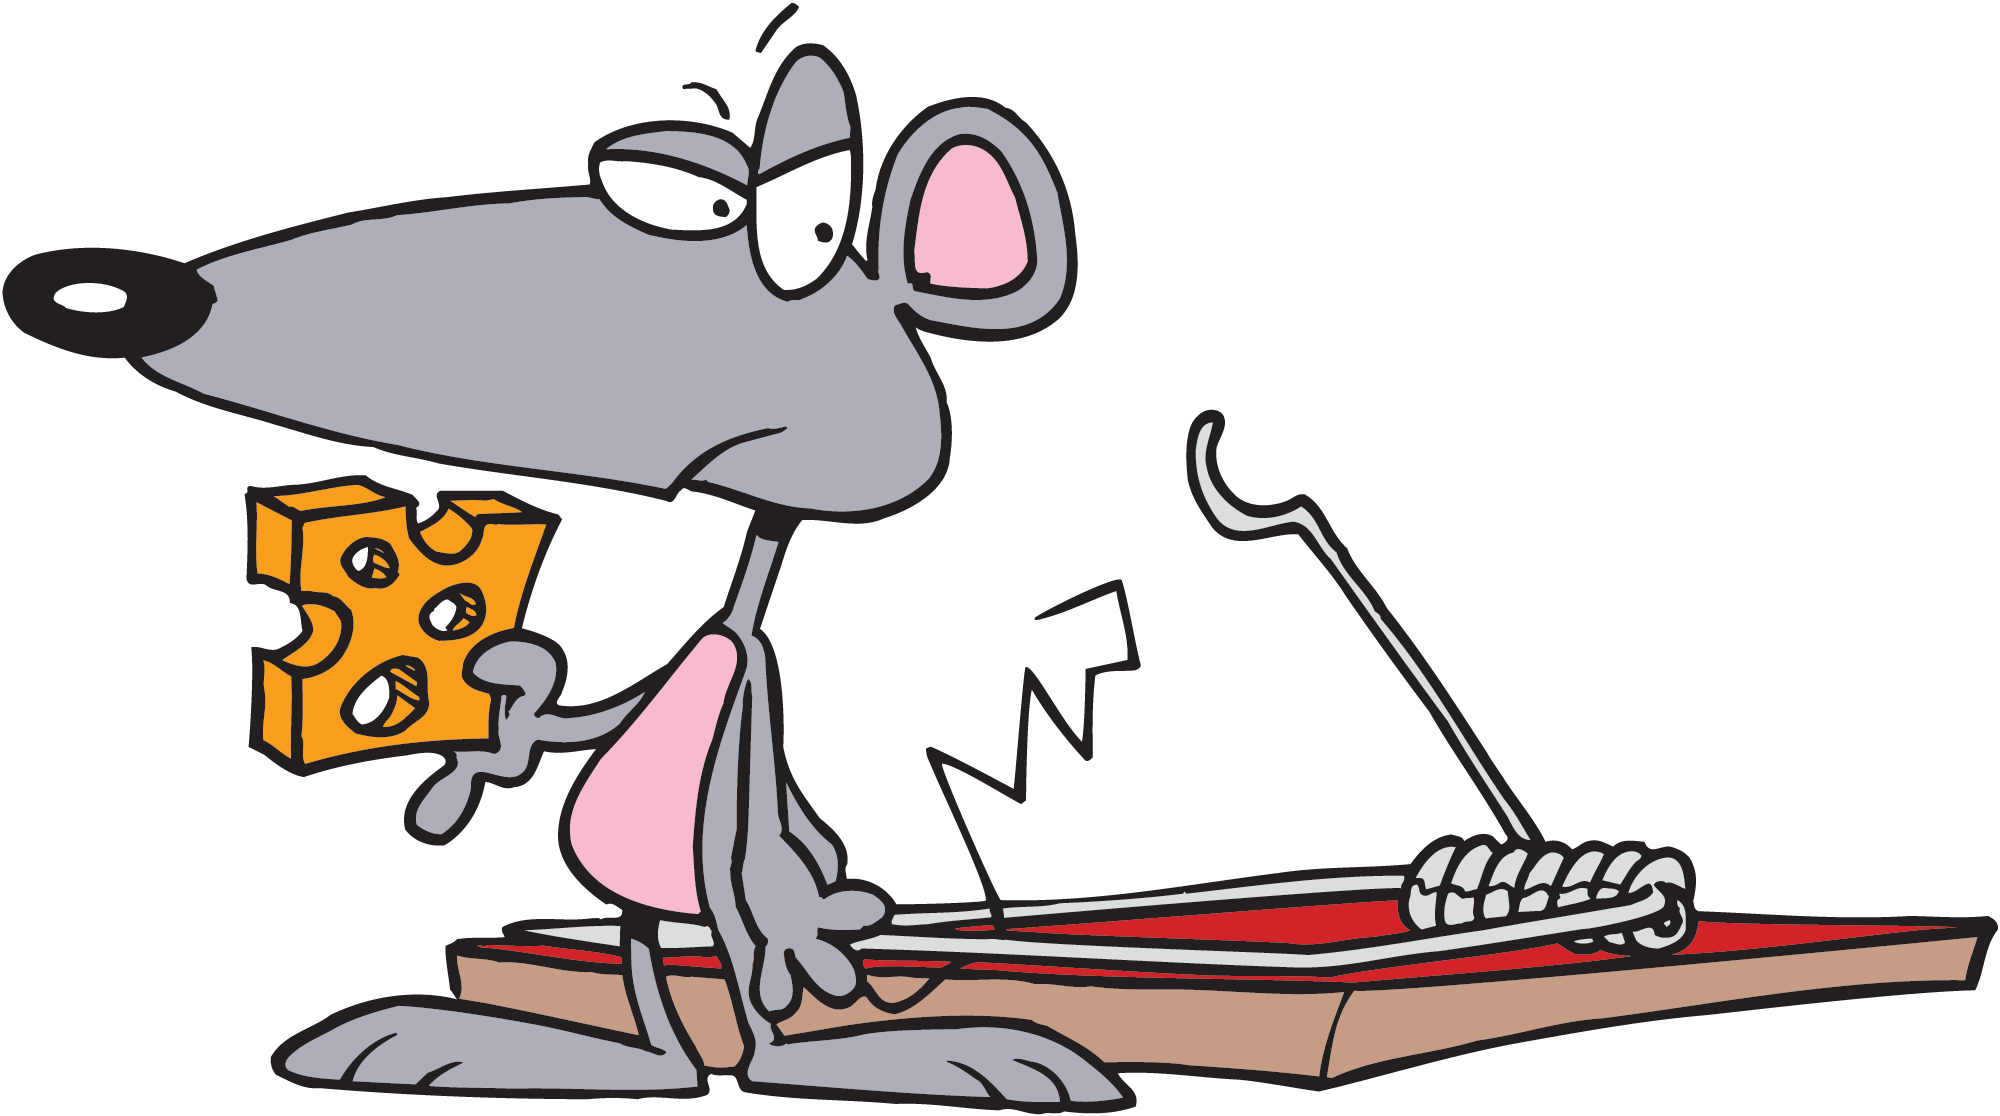 Mousetrap drawing cartoon. Mouse trap attack just